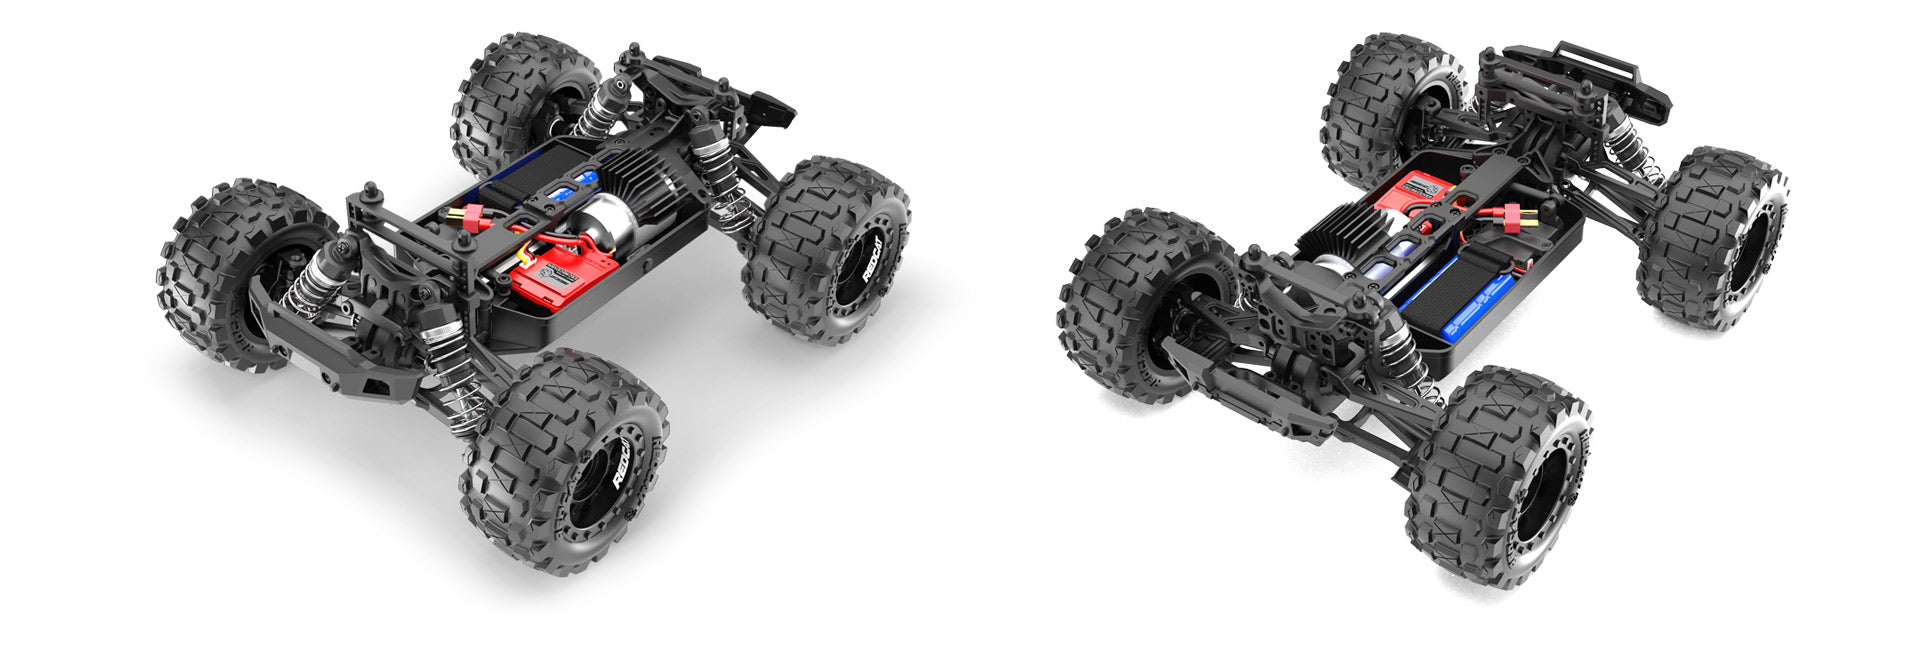 Redcat Volcano 16 1 16 Scale Brushed Monster Truck Shop Rc Cars Trucks Parts And Supplies